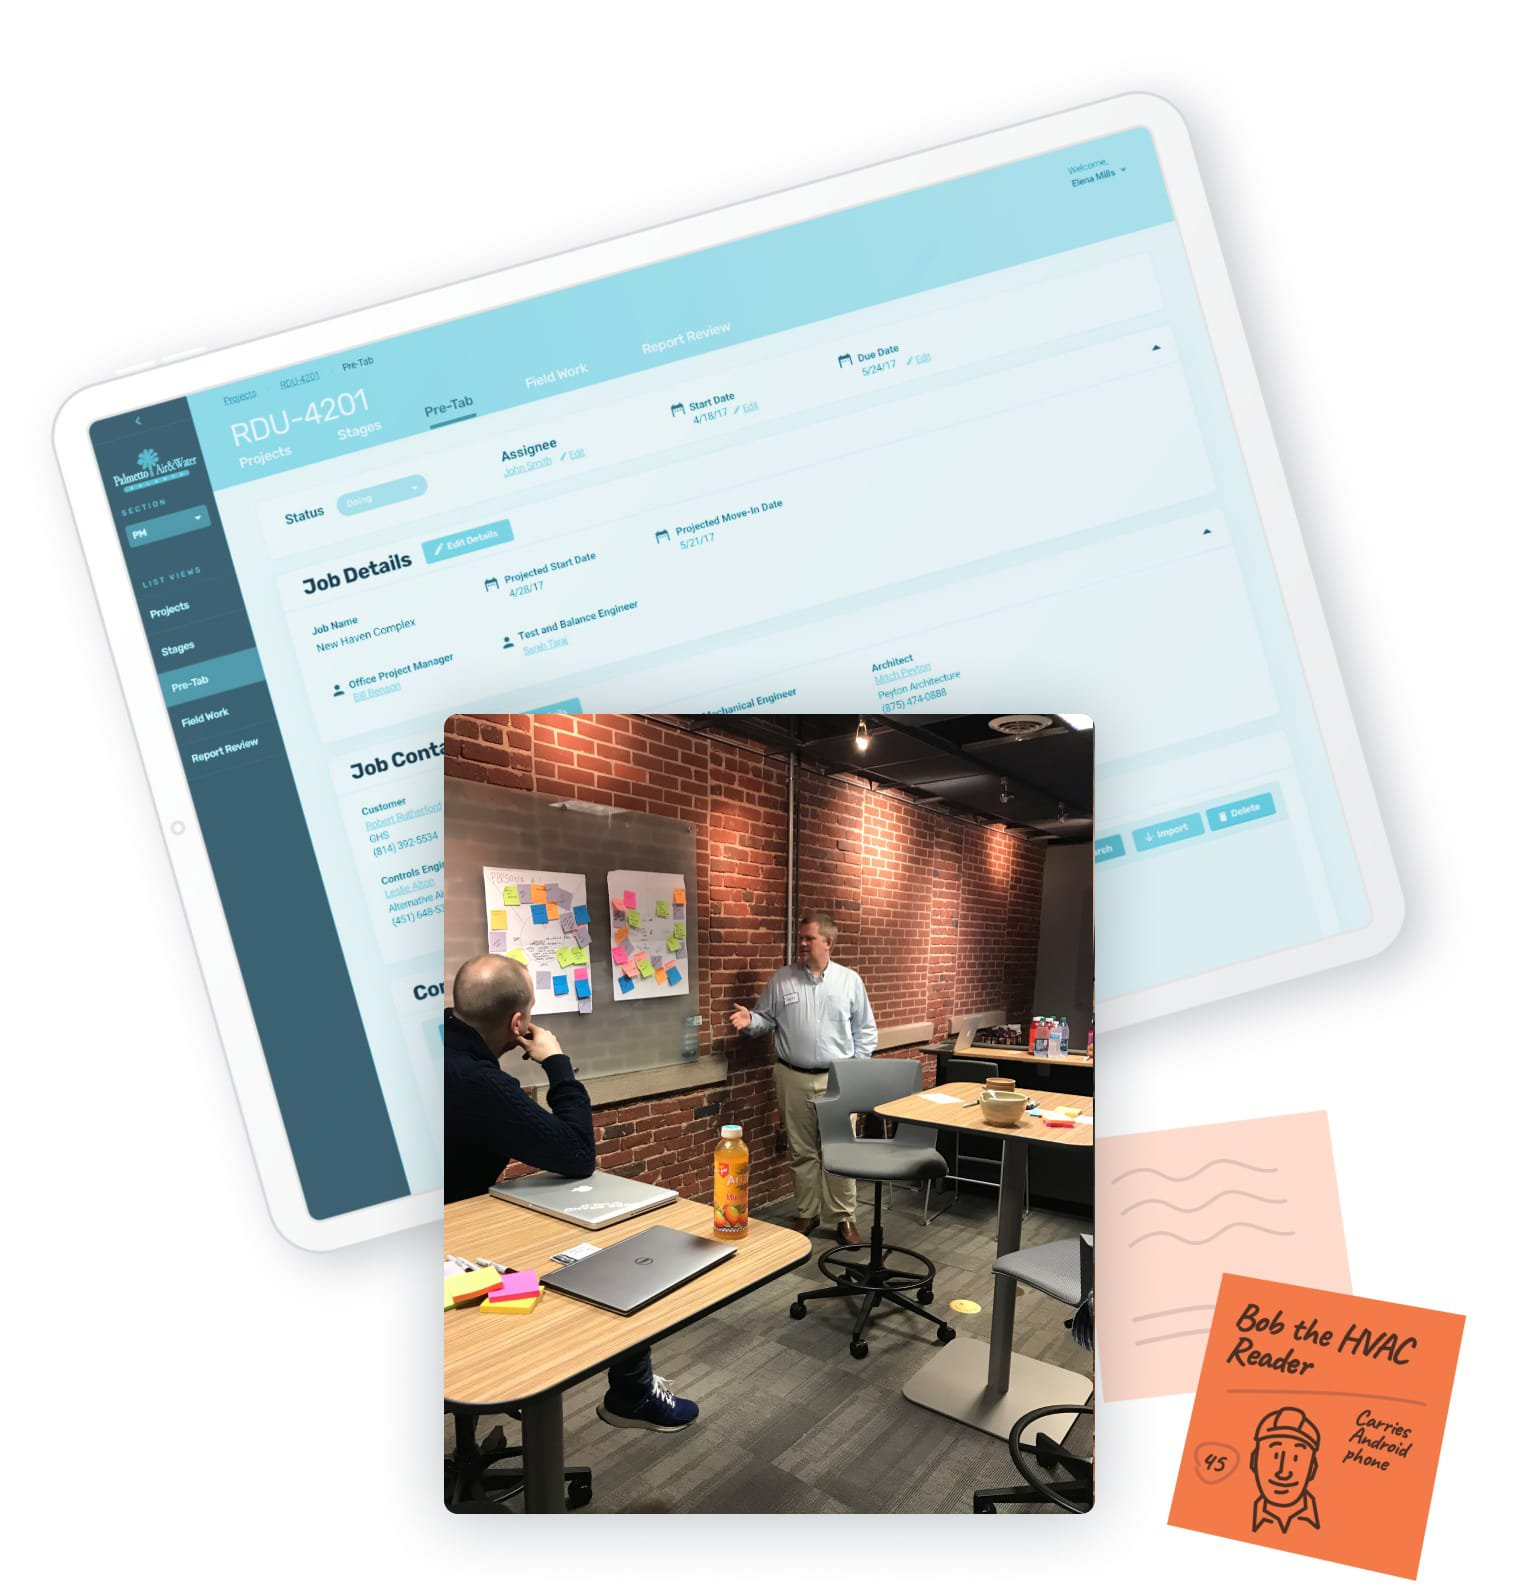 Software on iPad, employees collaborating, sticky notes